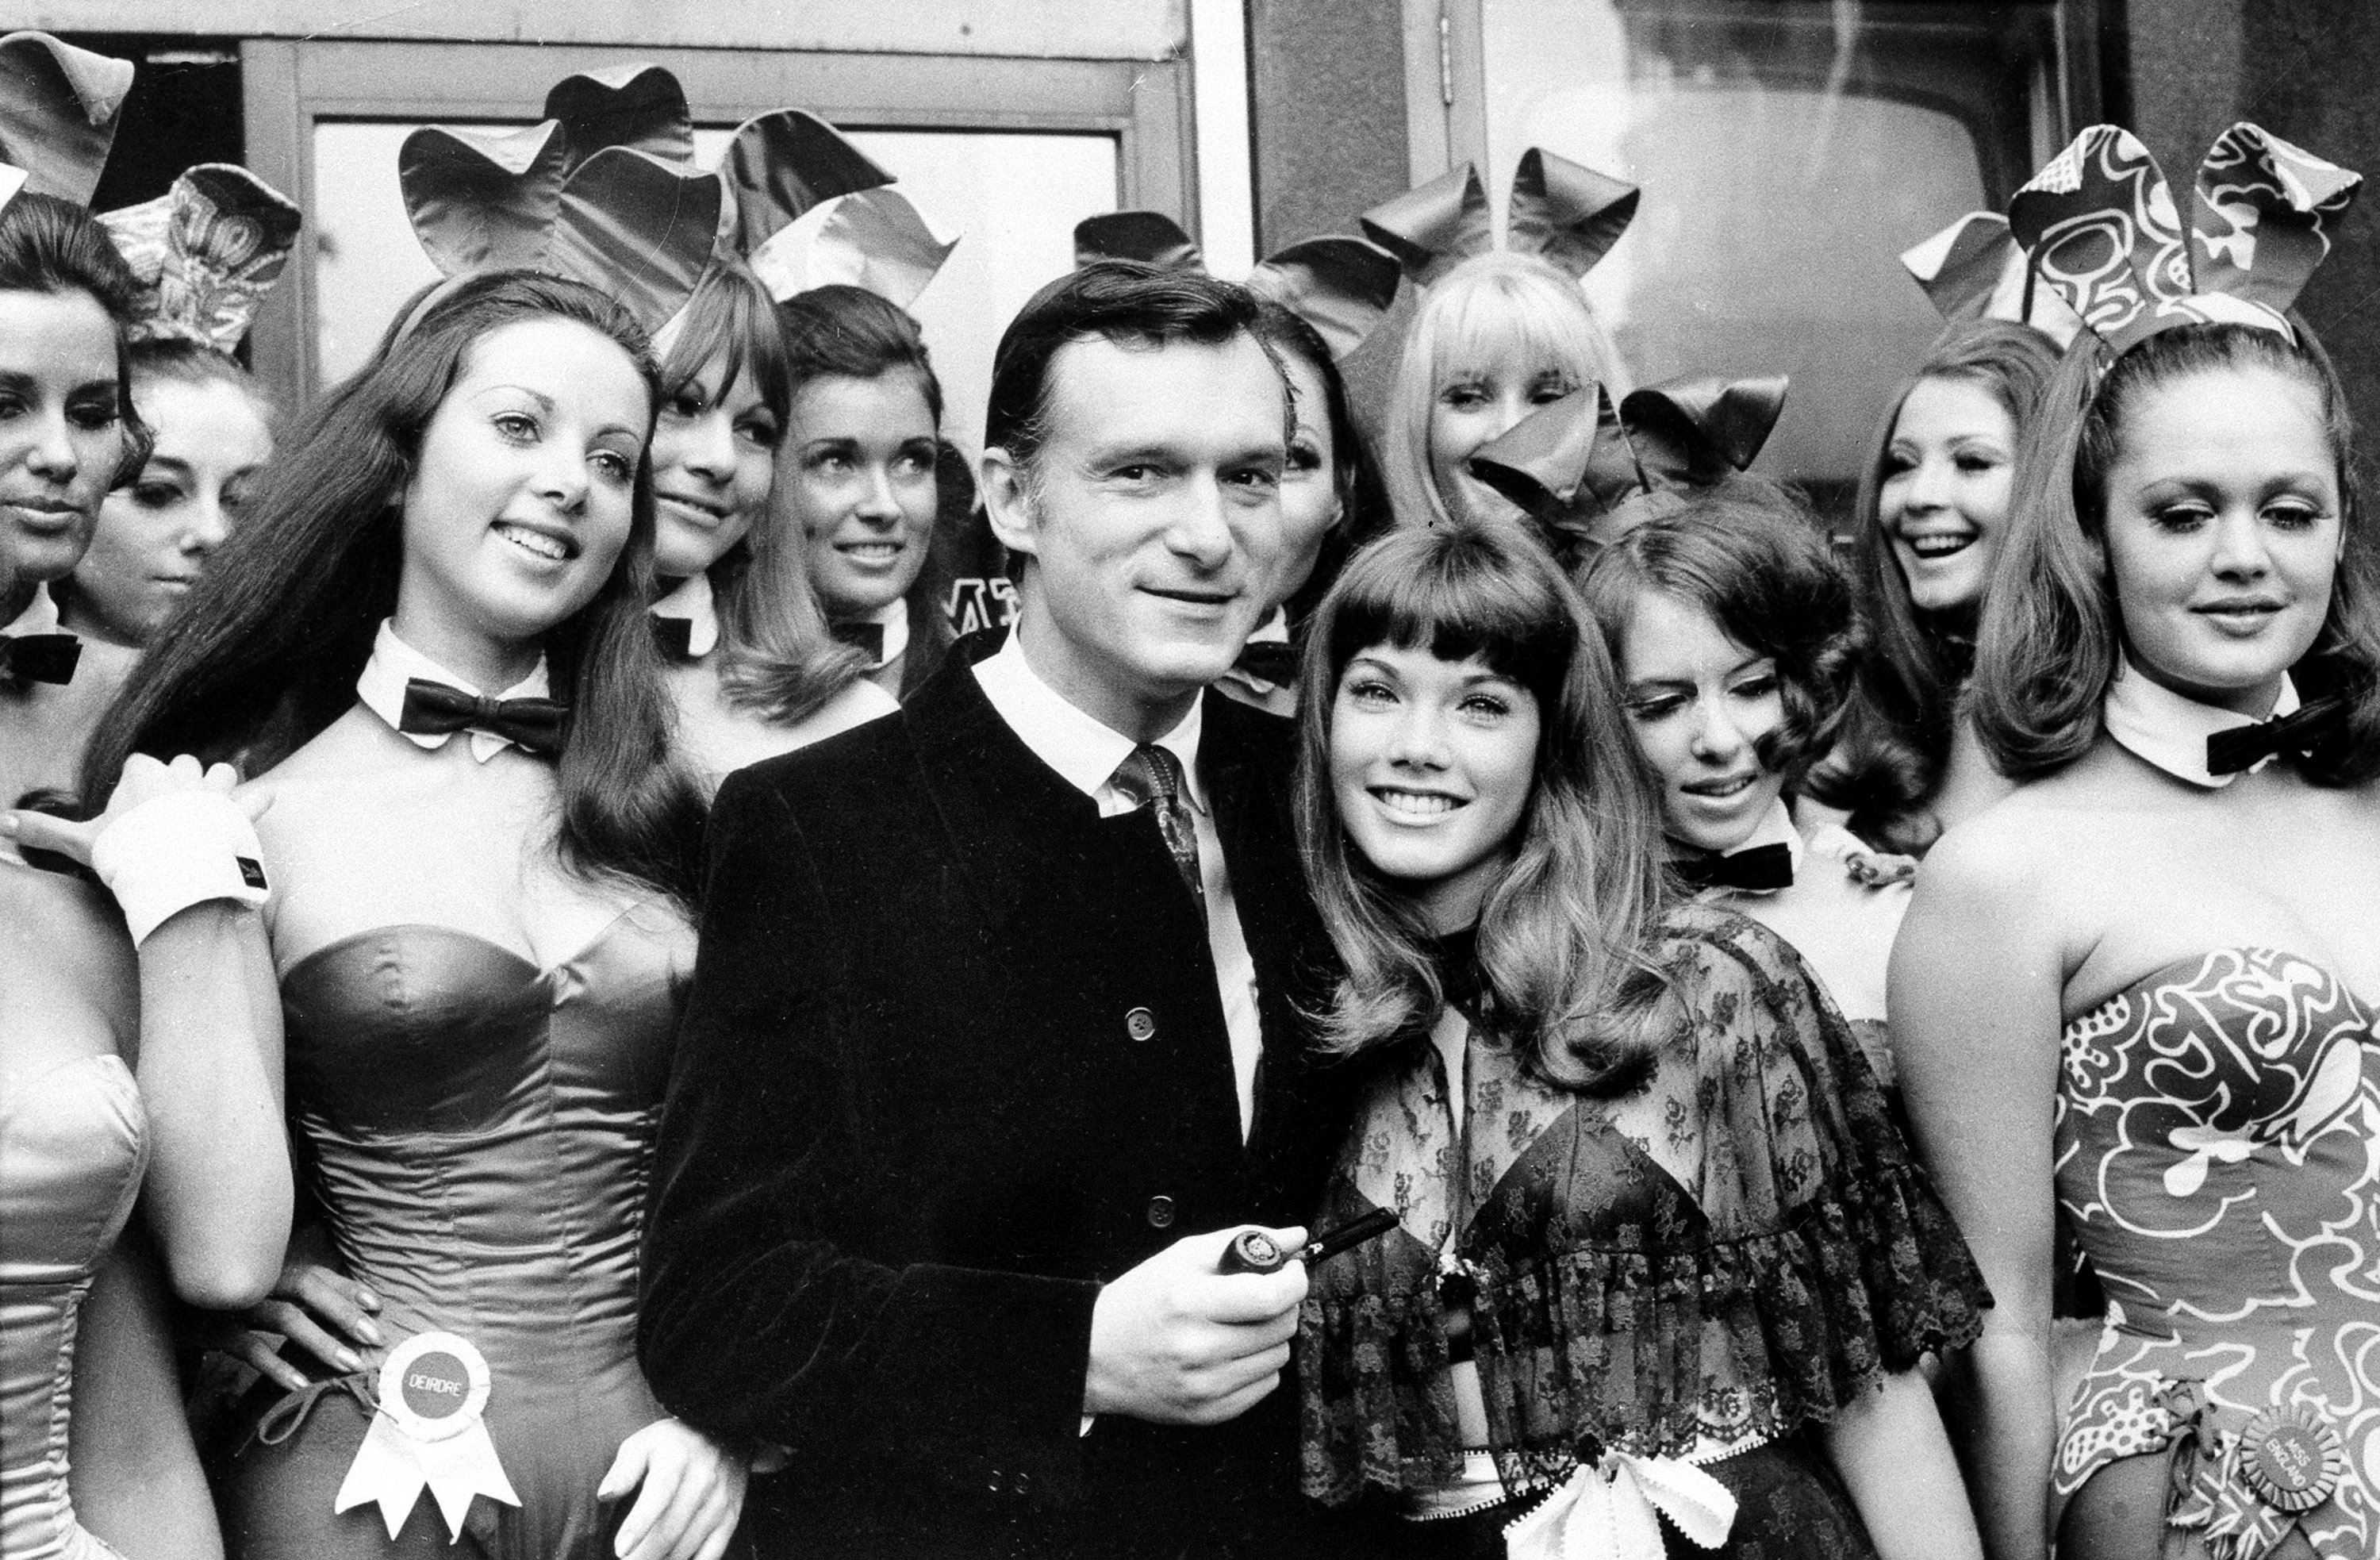 One man's Playboy: Encounters with Hefner through the years